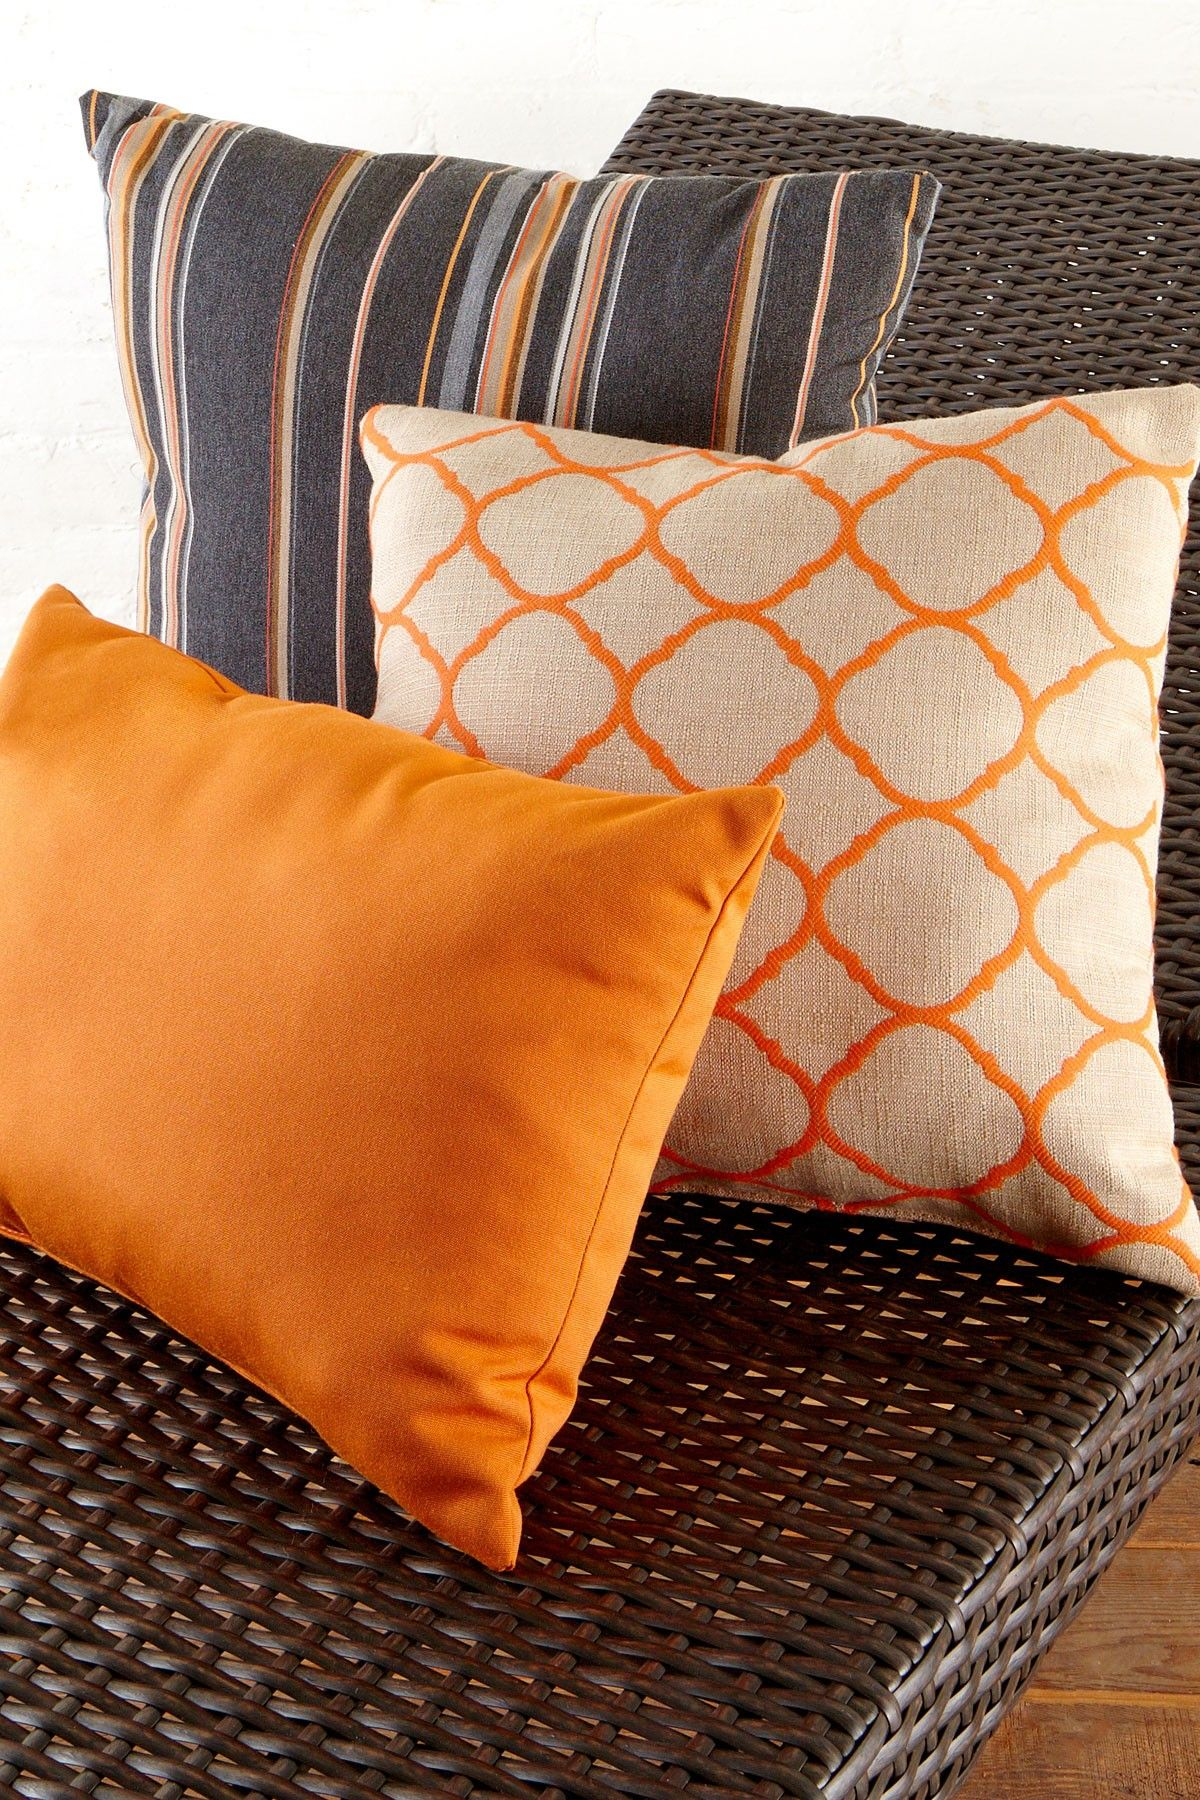 #TossPillows Make Your Own Sunbrella Outdoor Pillows For Your Outdoor  Living Space.